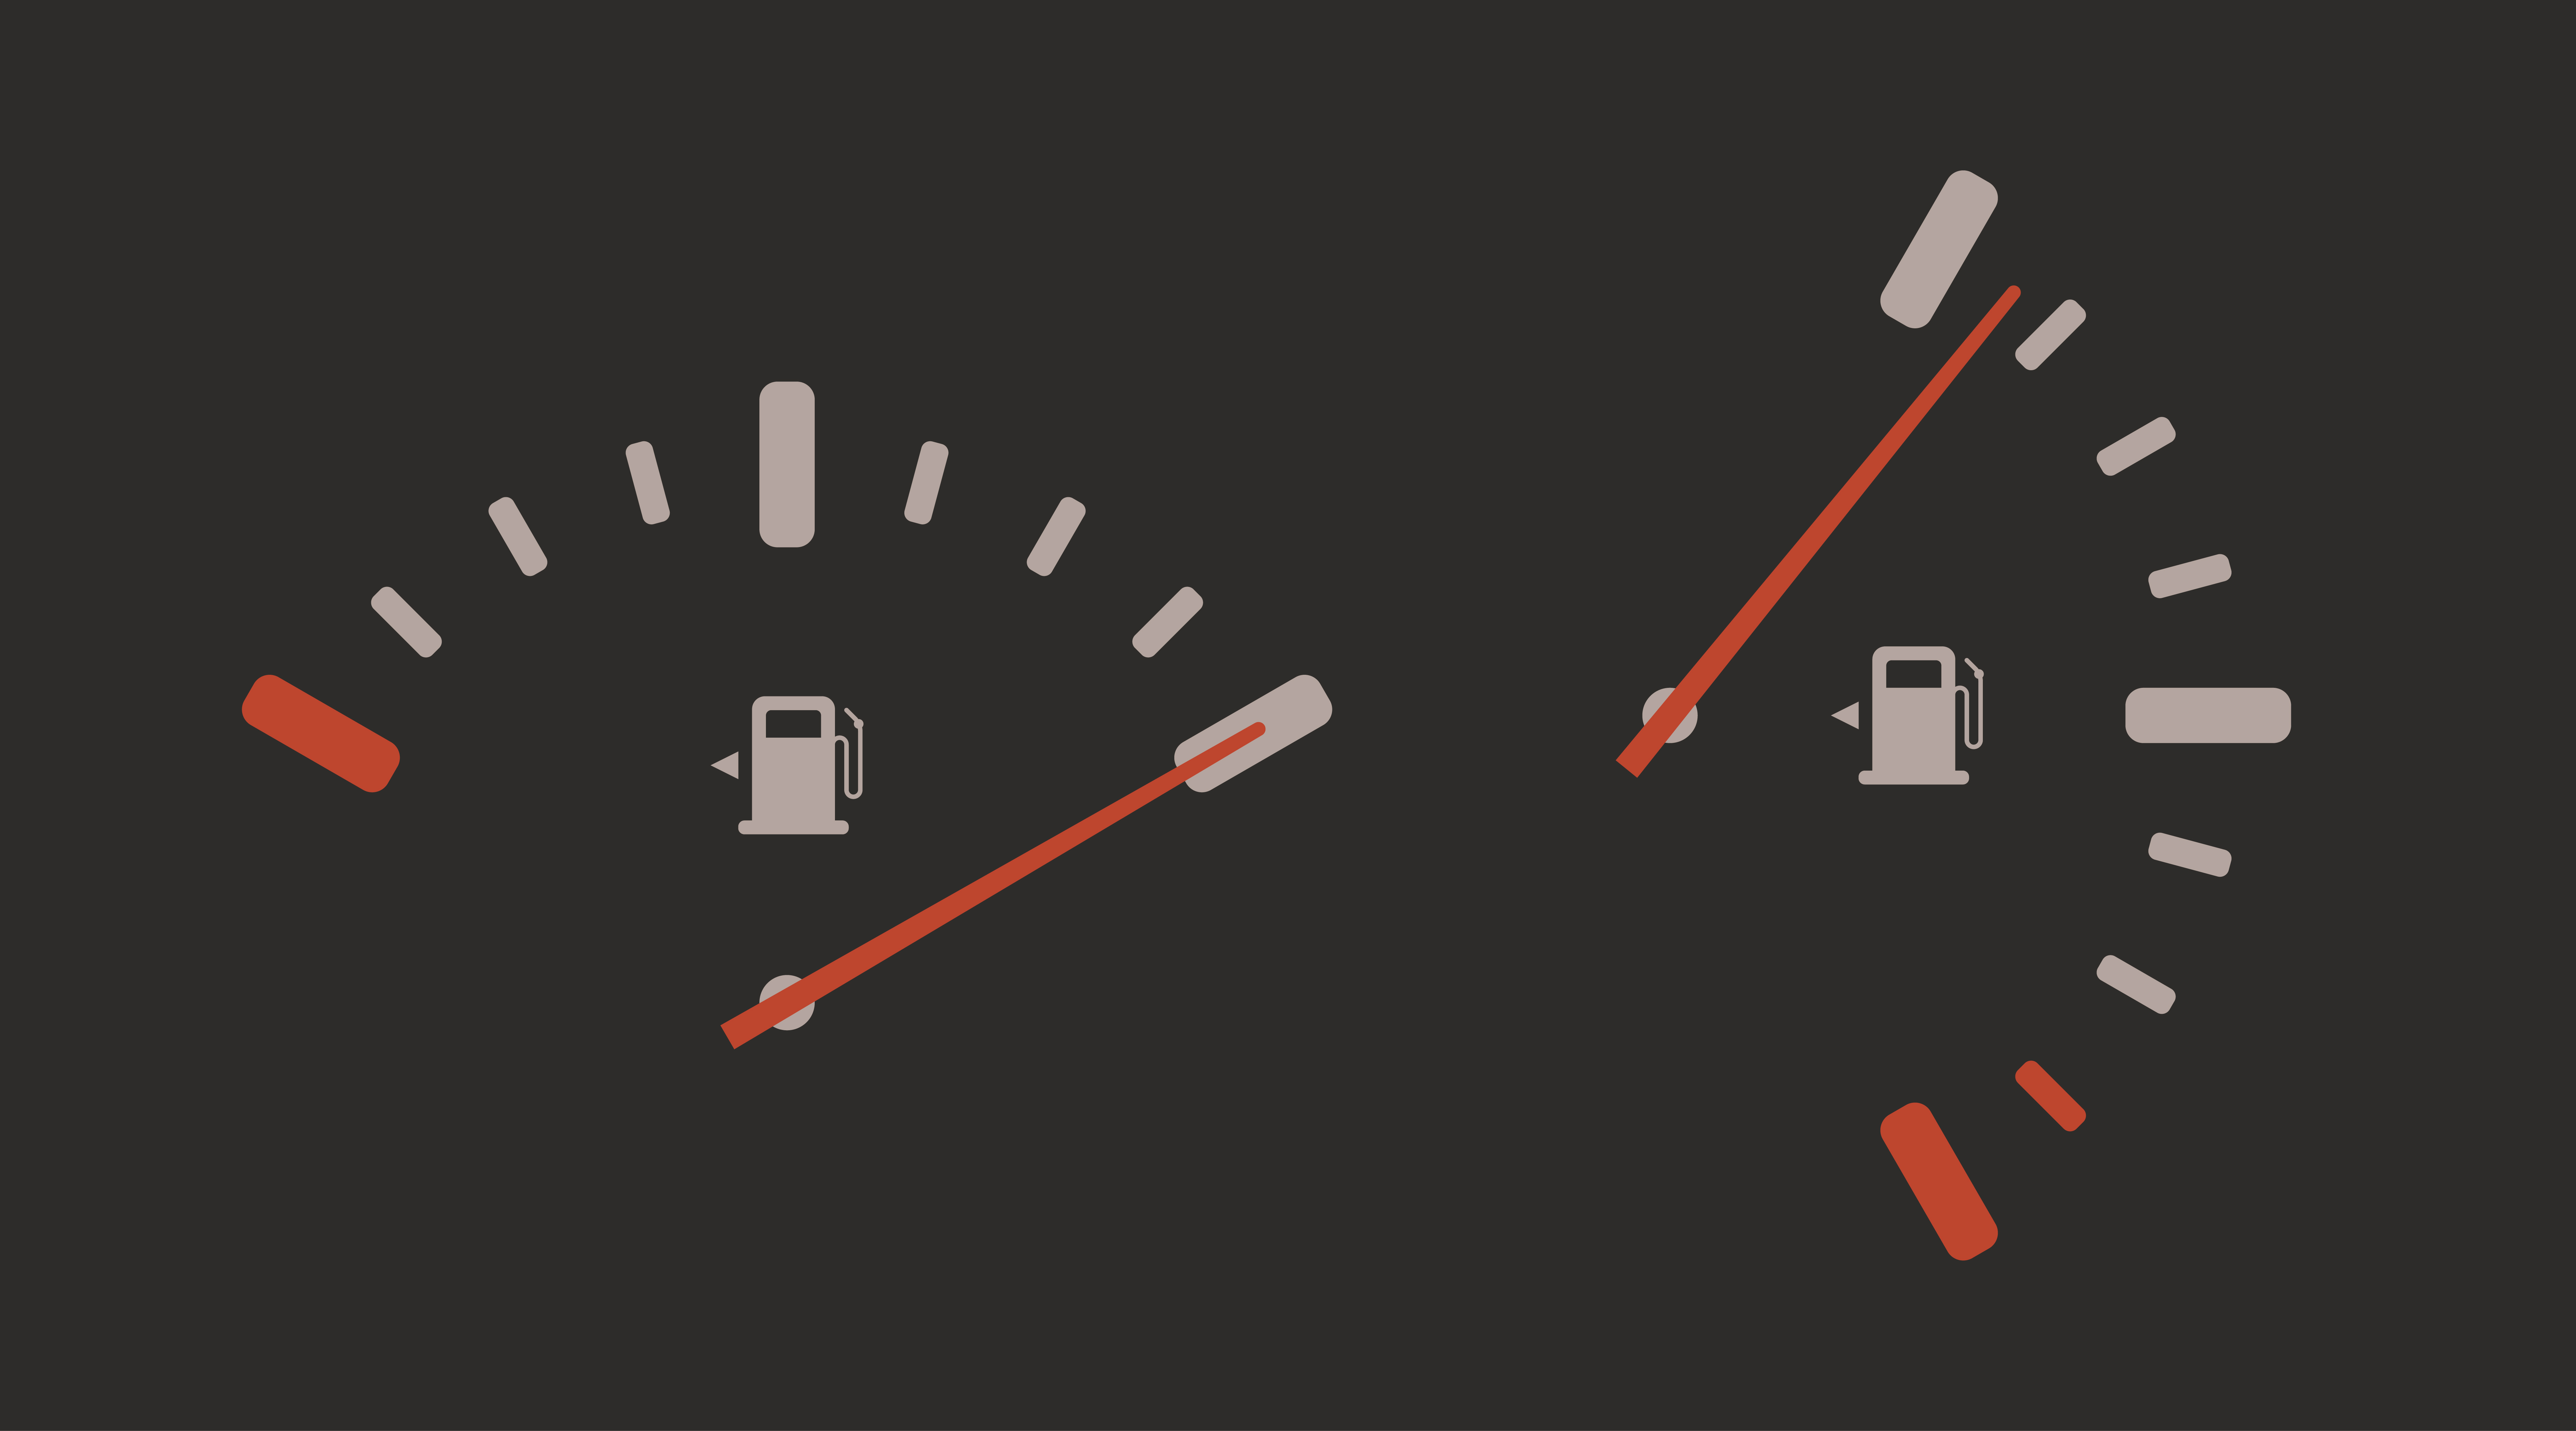 Fuel gauge indicator vector icon. Petrol pump station symbol. Full gasoline level manometr sign. Auto car indicator panel illustration